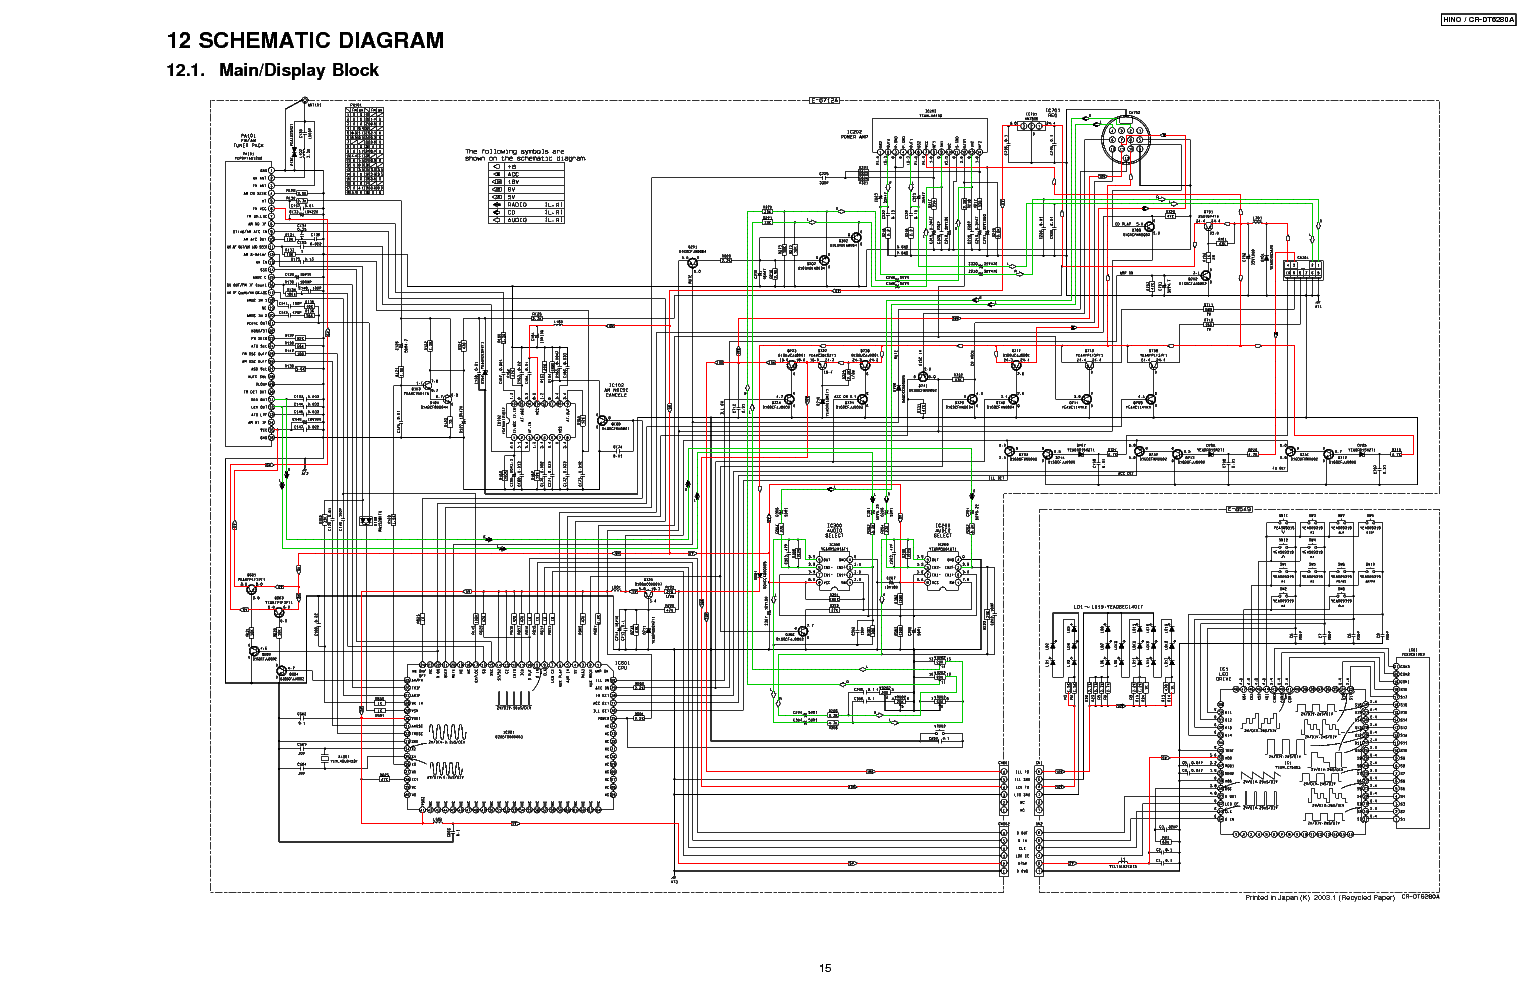 hino_cr dt6280a_sch.pdf_1 hino cr dt6280a sch service manual download, schematics, eeprom hino wiring diagram schematic at mifinder.co